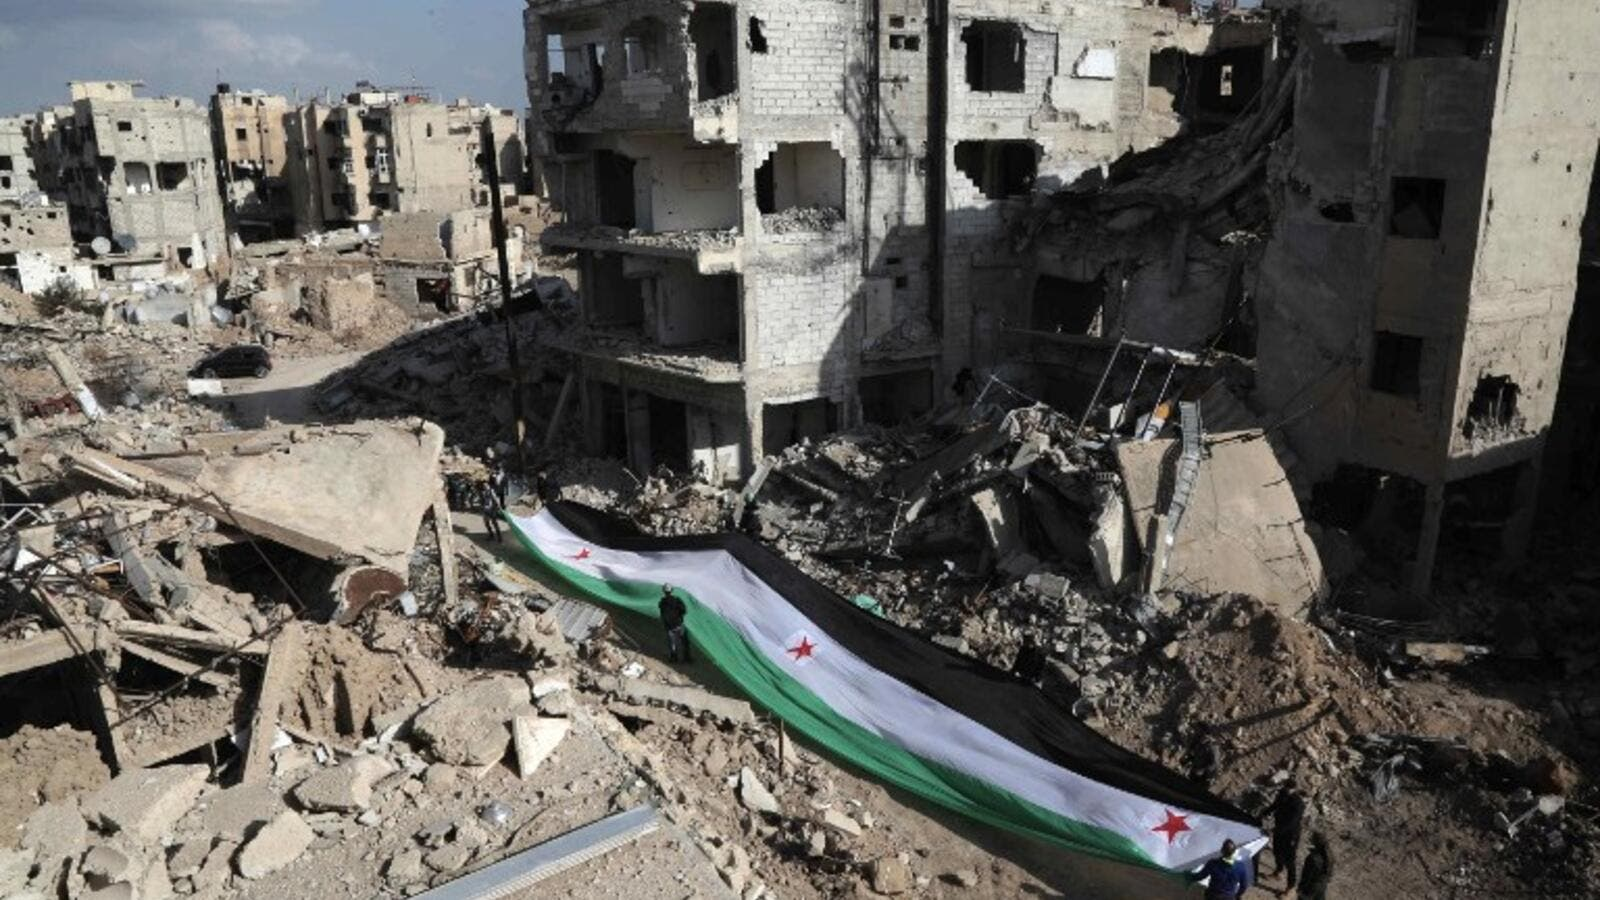 Residents and activists hold a giant a pre-Baath Syrian flag, now used by the Syrian opposition, during an anti-regime protest in the suburbs of Damascus. (AFP/Amer Almohibany)